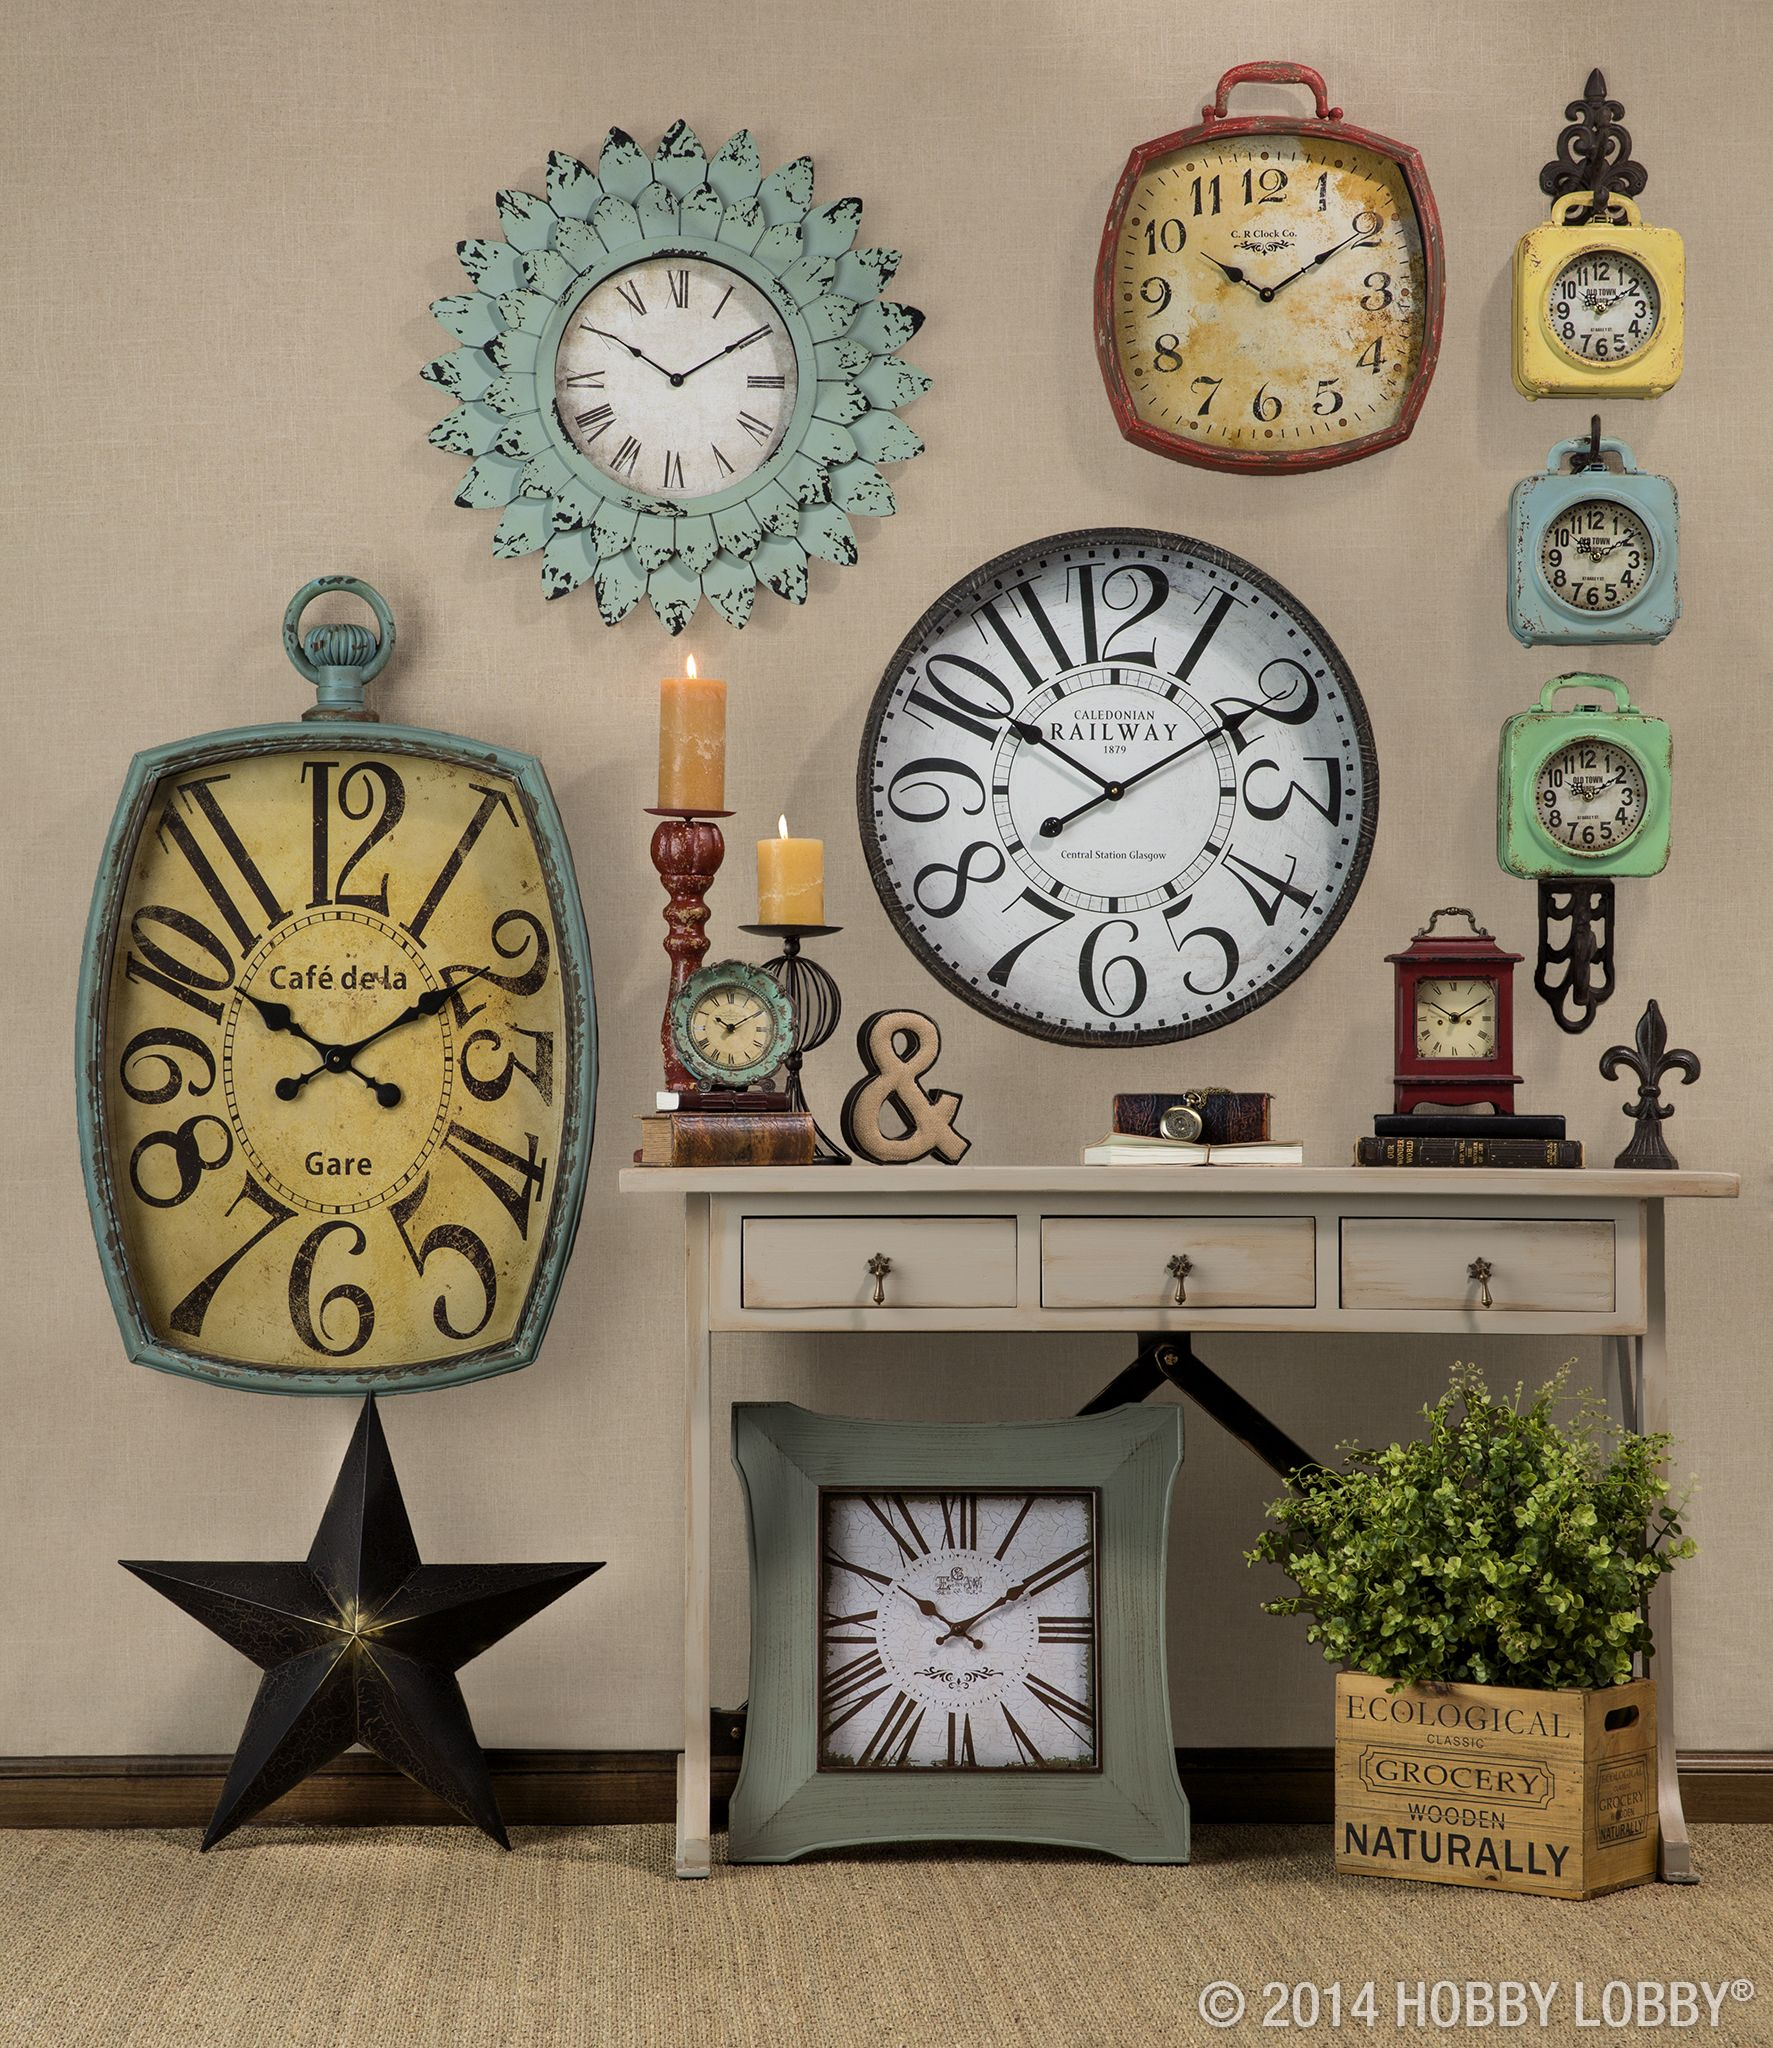 die besten 25 hobby lobby wall clocks ideen auf pinterest lobbys hobby lobby shop und. Black Bedroom Furniture Sets. Home Design Ideas